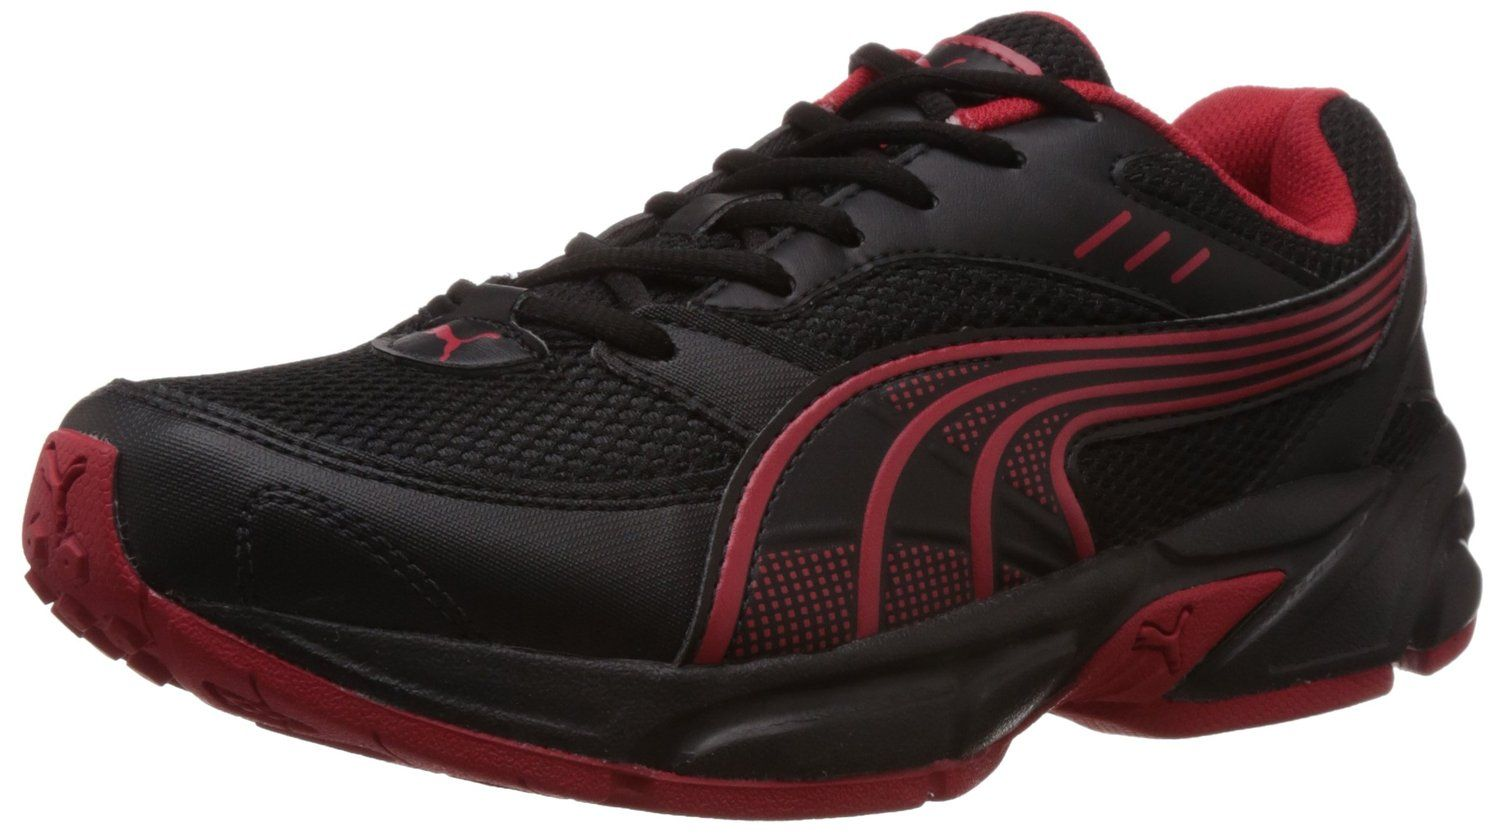 Puma Men S Pluto Dp Running Shoes Buy Online At Low Prices In